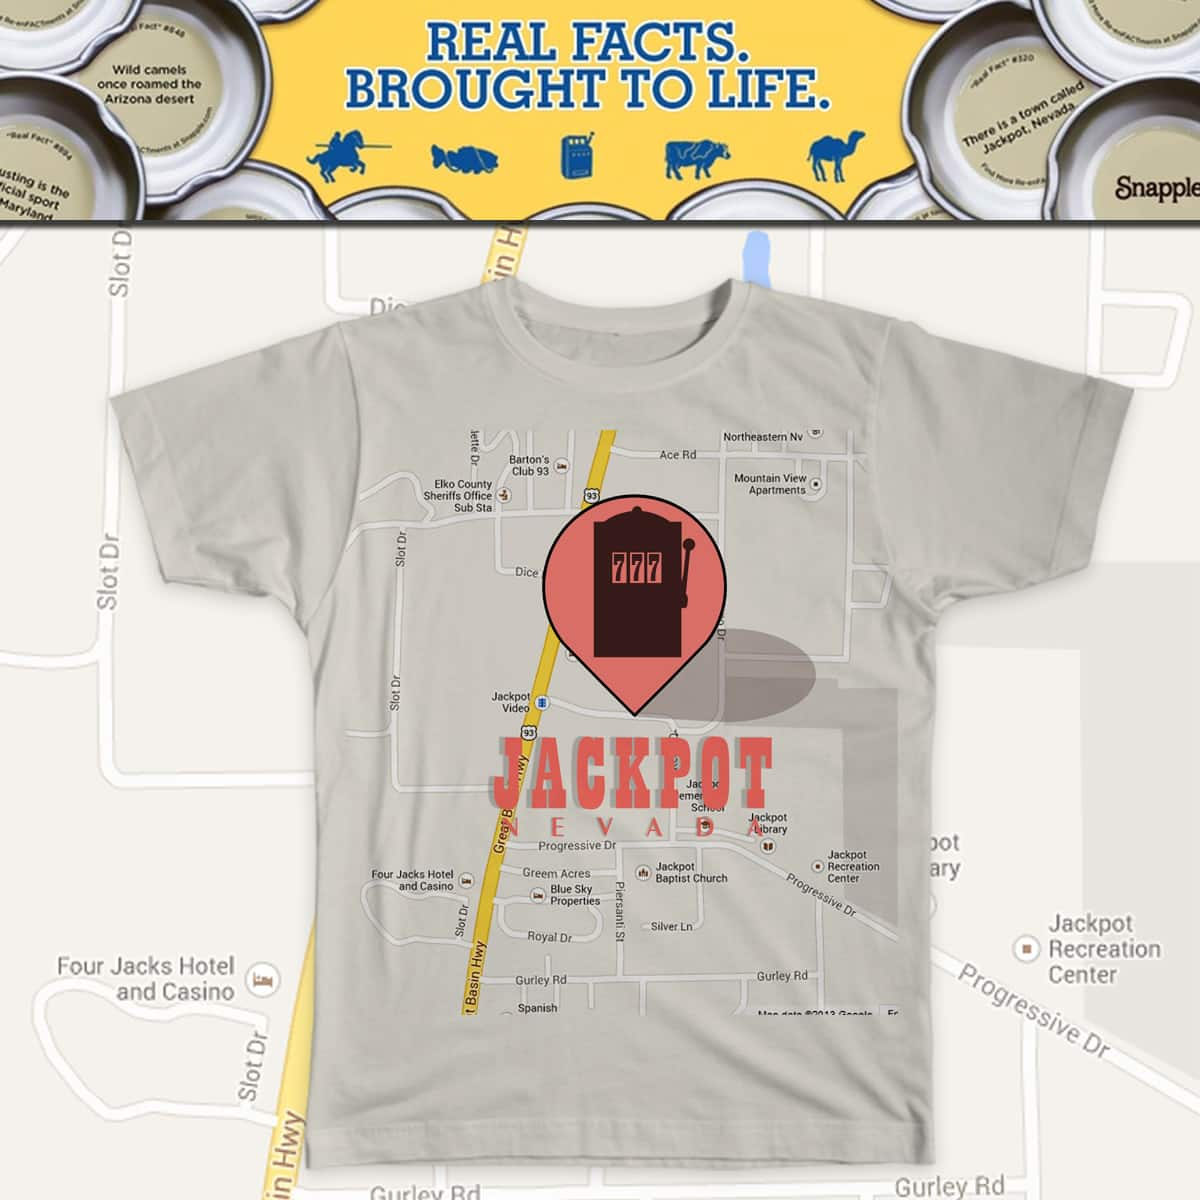 JACKPOT by coffeecontrolled on Threadless